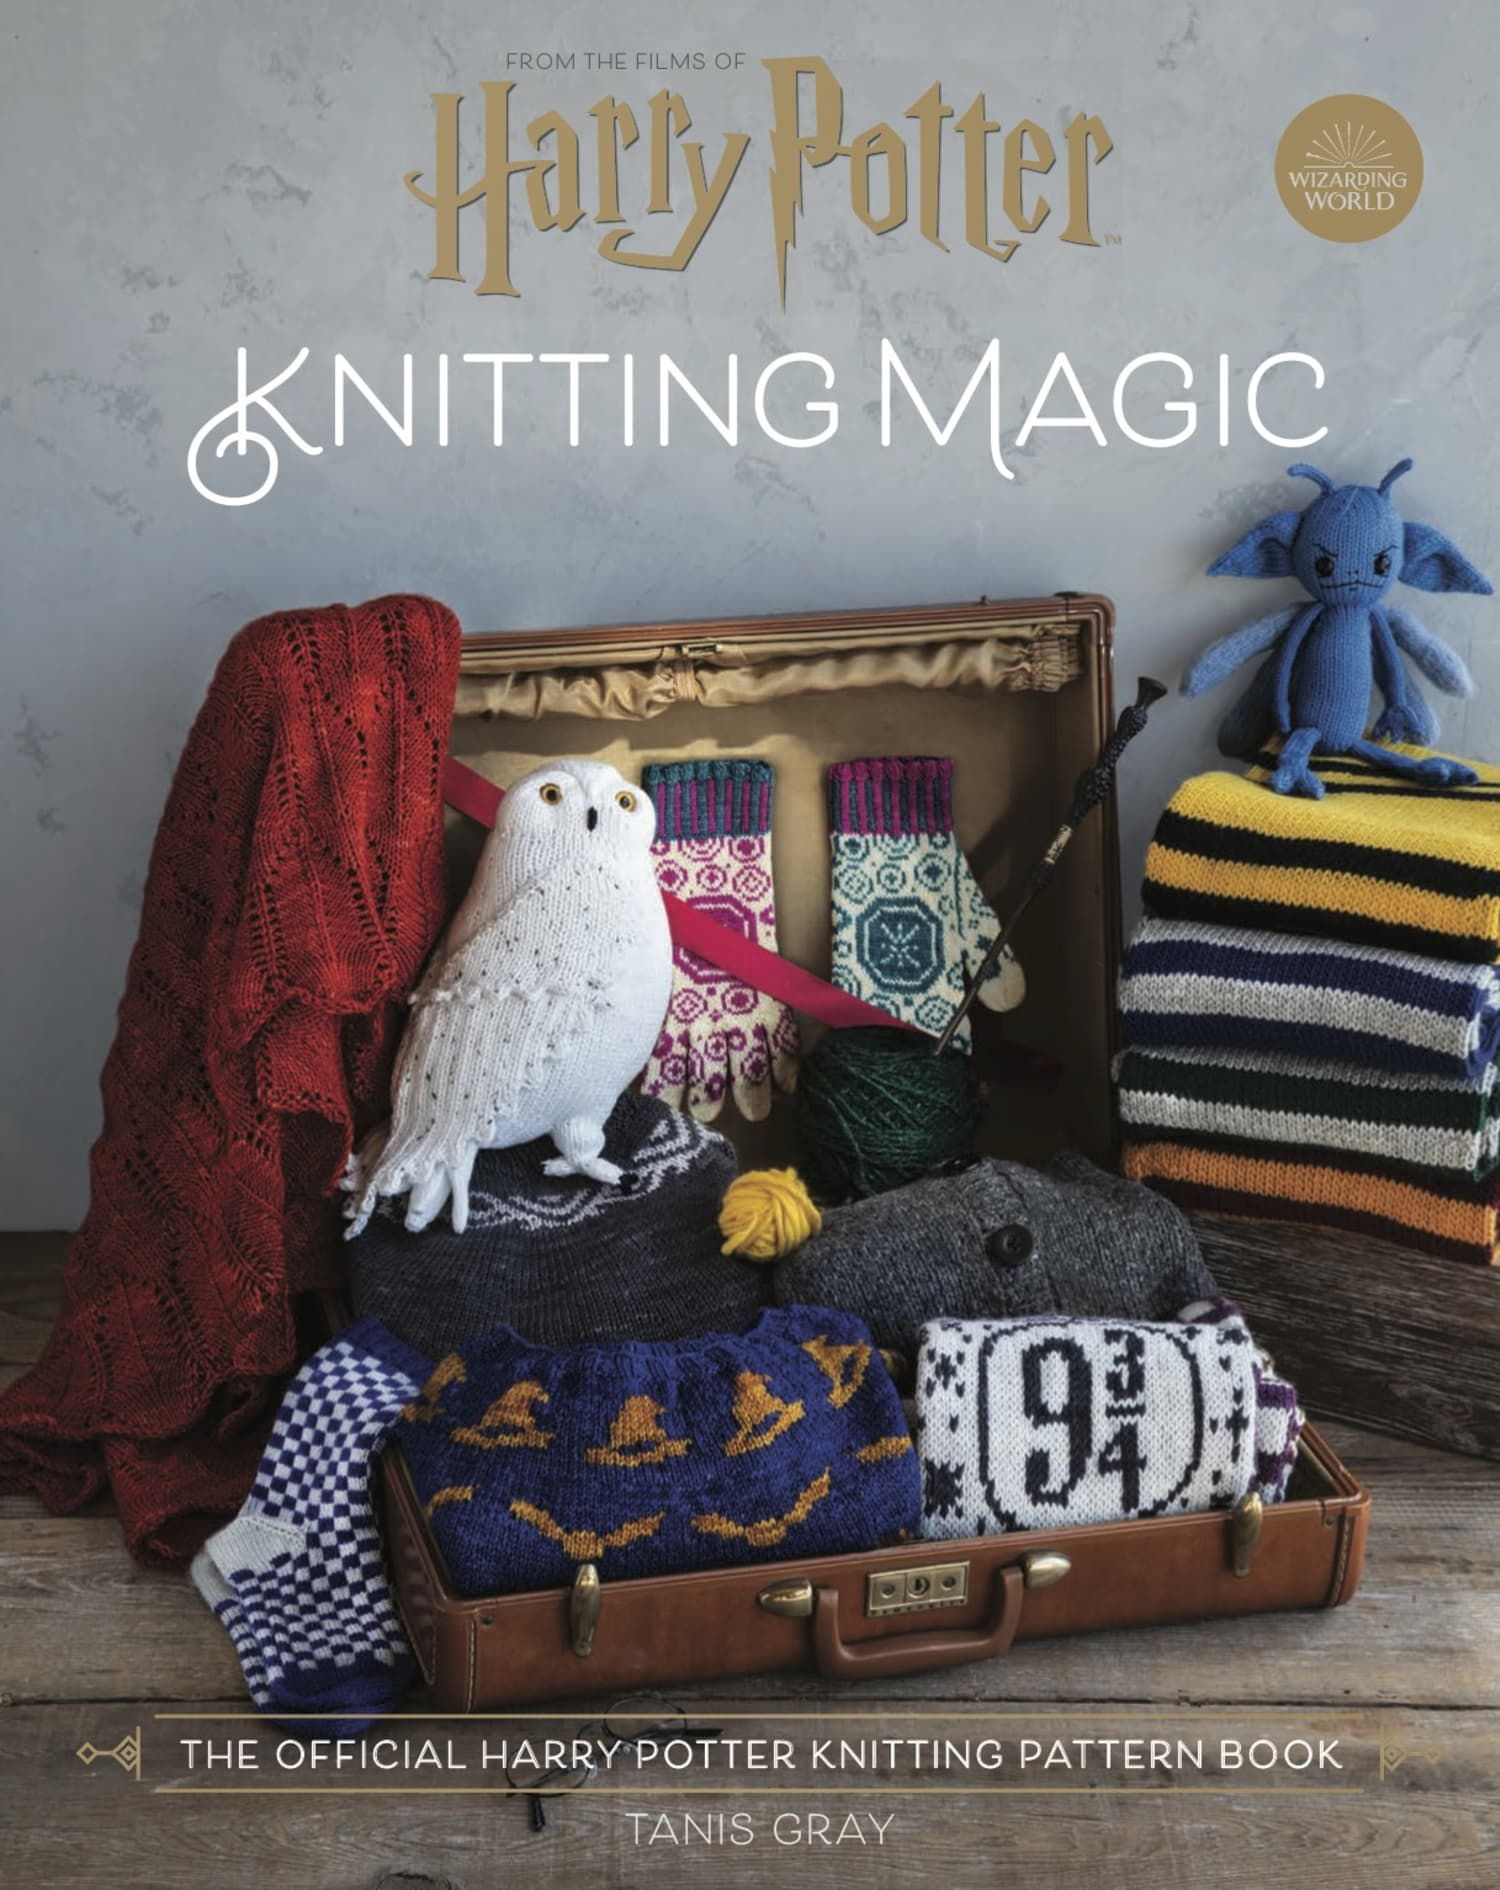 The First Official 'Harry Potter' Knitting Pattern Book Will Be Here Soon